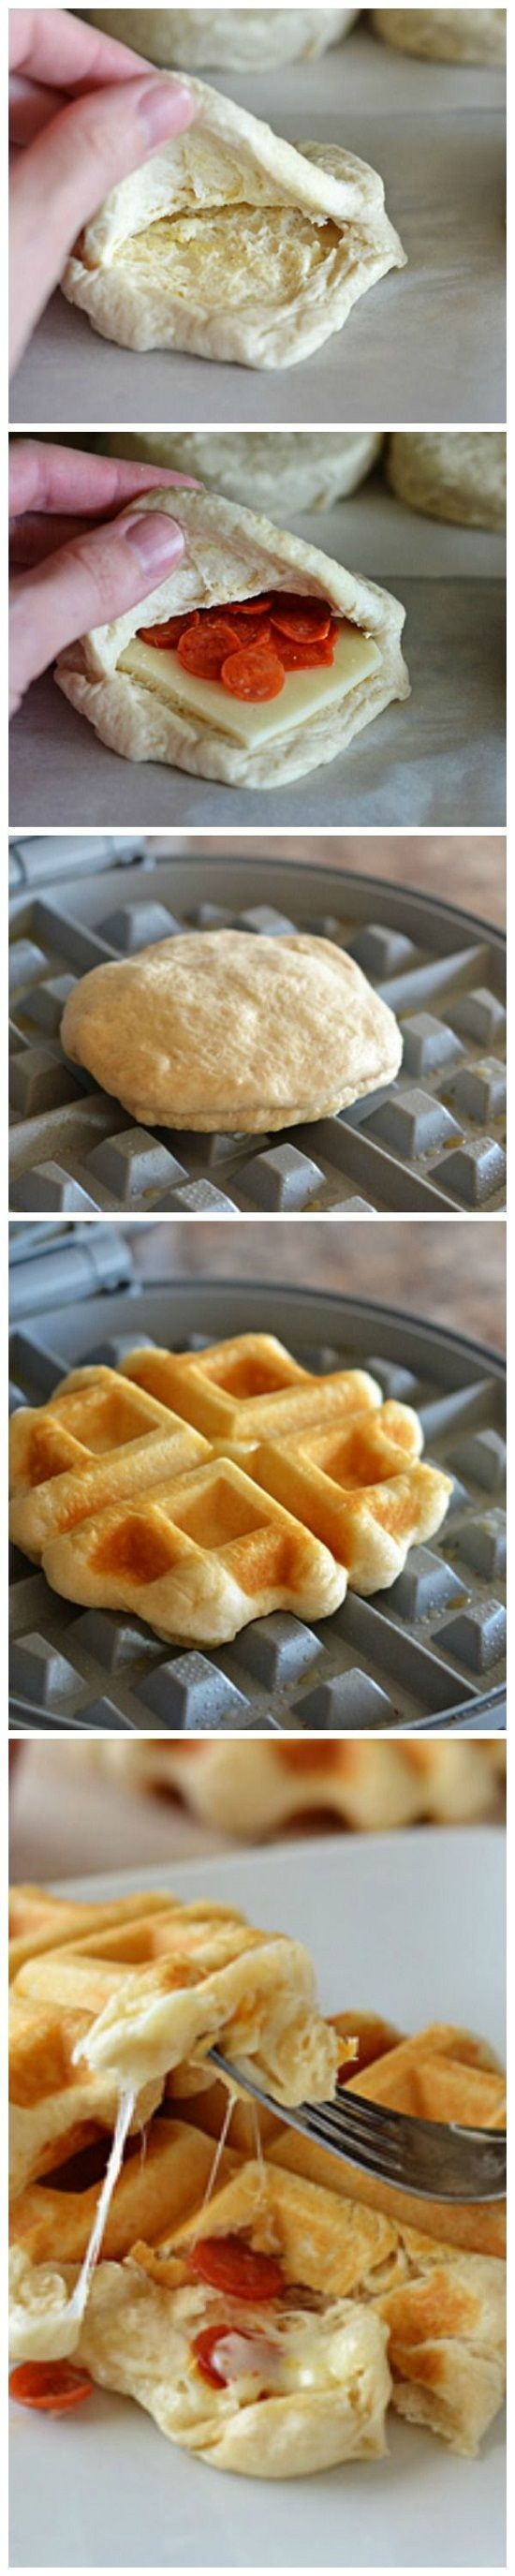 Pizza Waffles Recipe. this is seriously genius